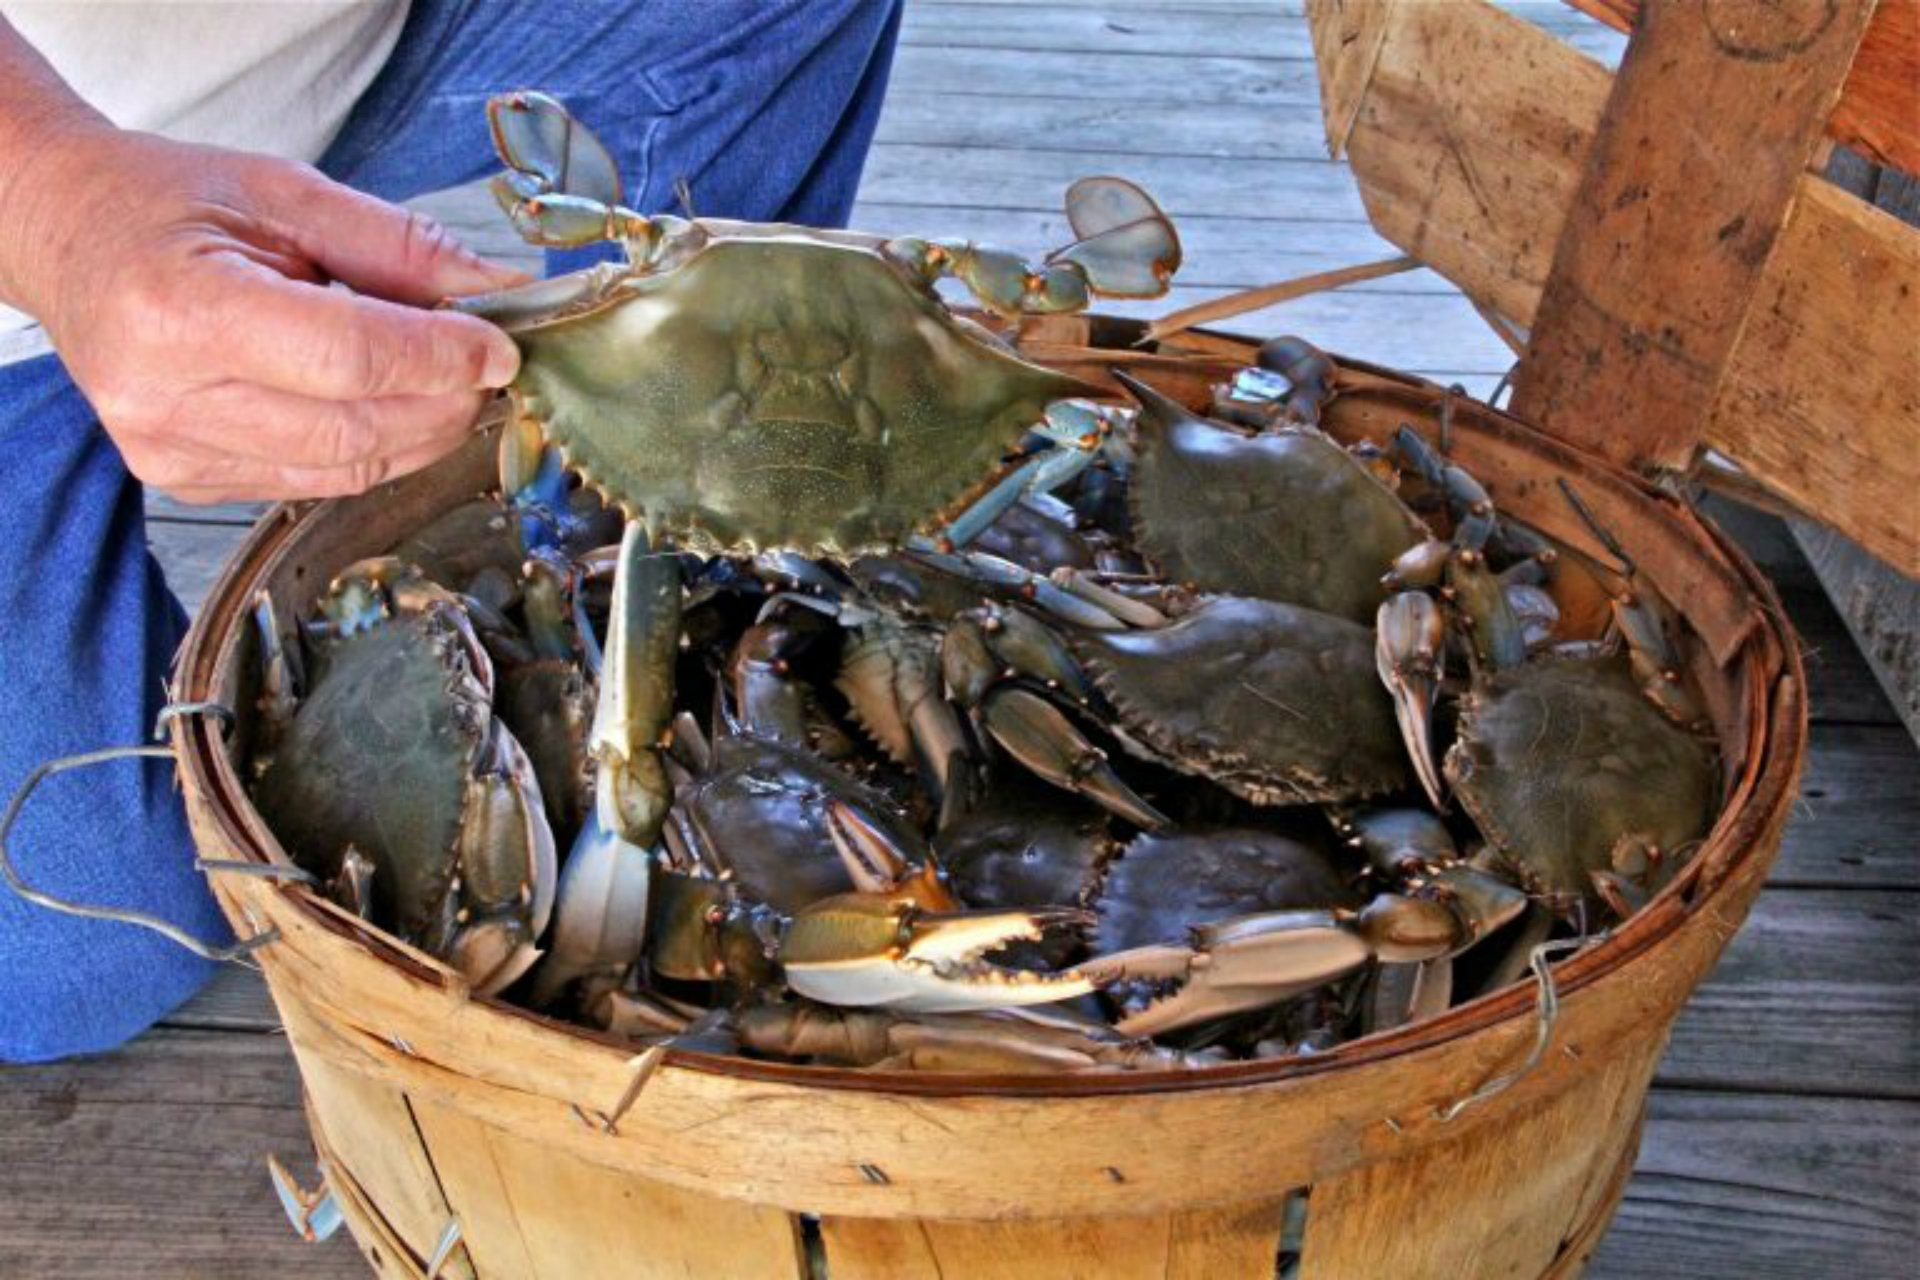 A basket of crabs caught on the Delaware bayshore. (Emma Lee/WHYY)